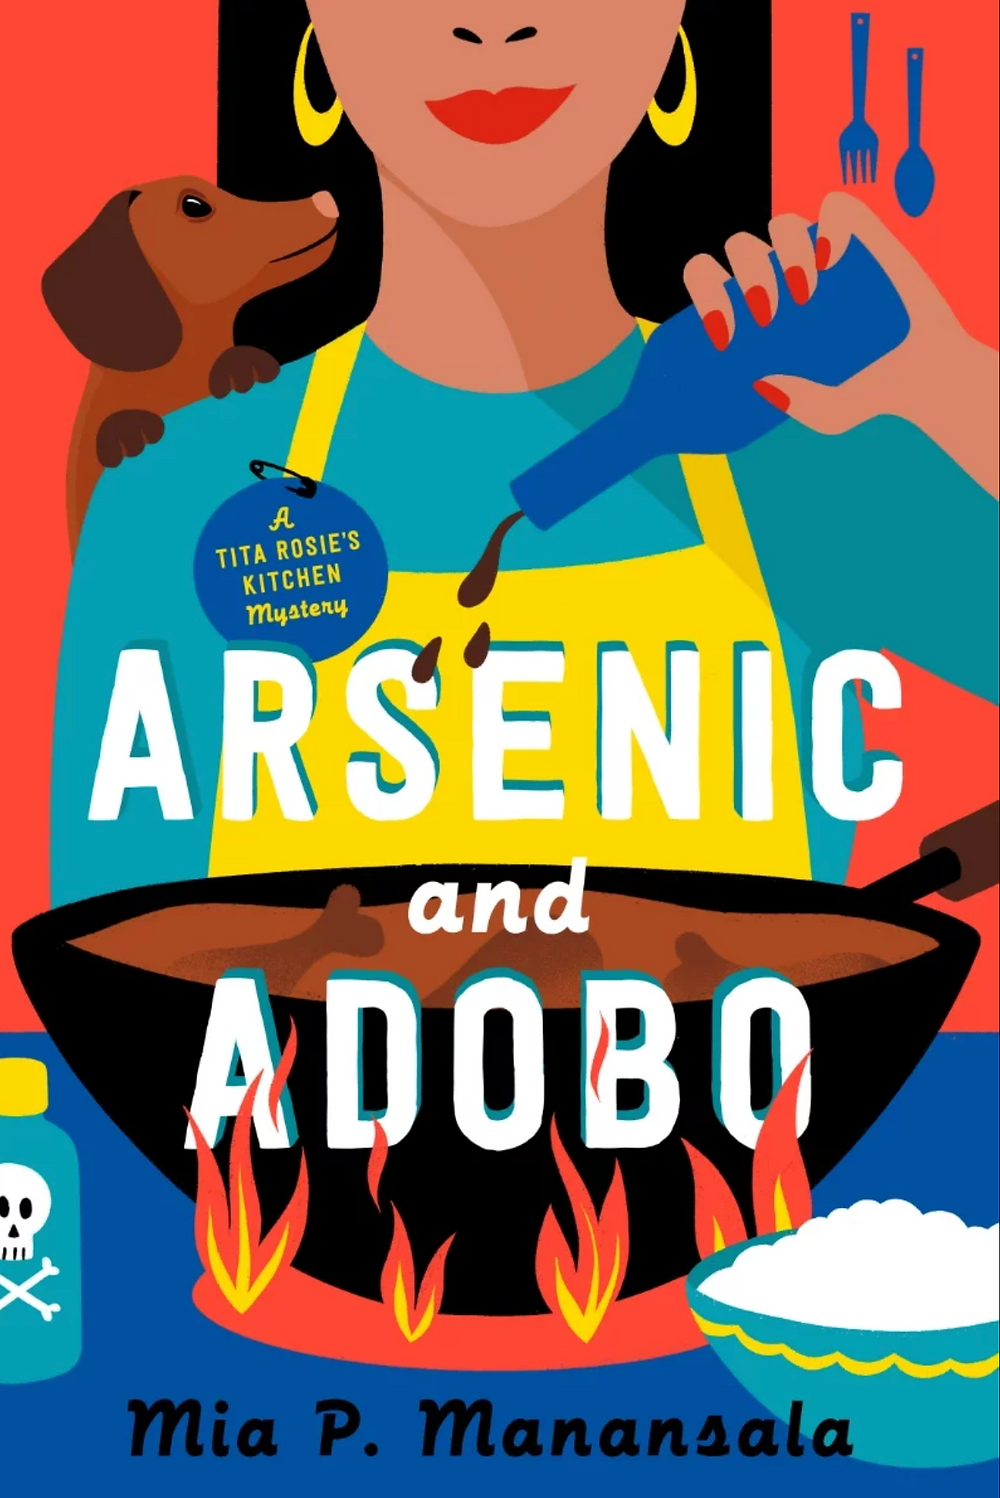 Arsenic and Adobe by Mia P. Manansala. Woman pouring liquid into a wok with wiener dog at her side.